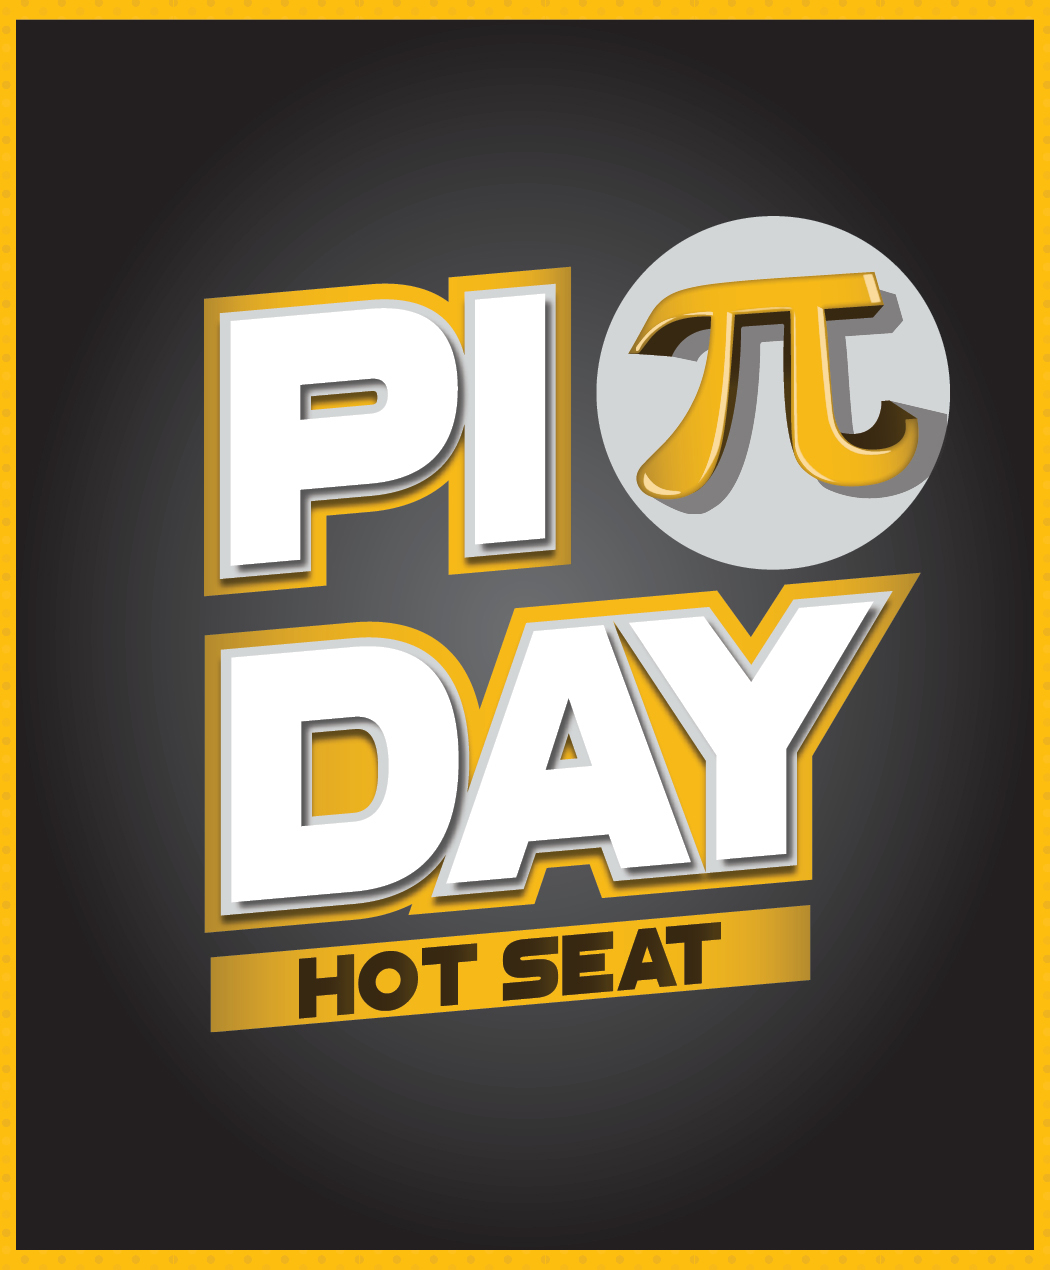 Pi Day Hot Seat